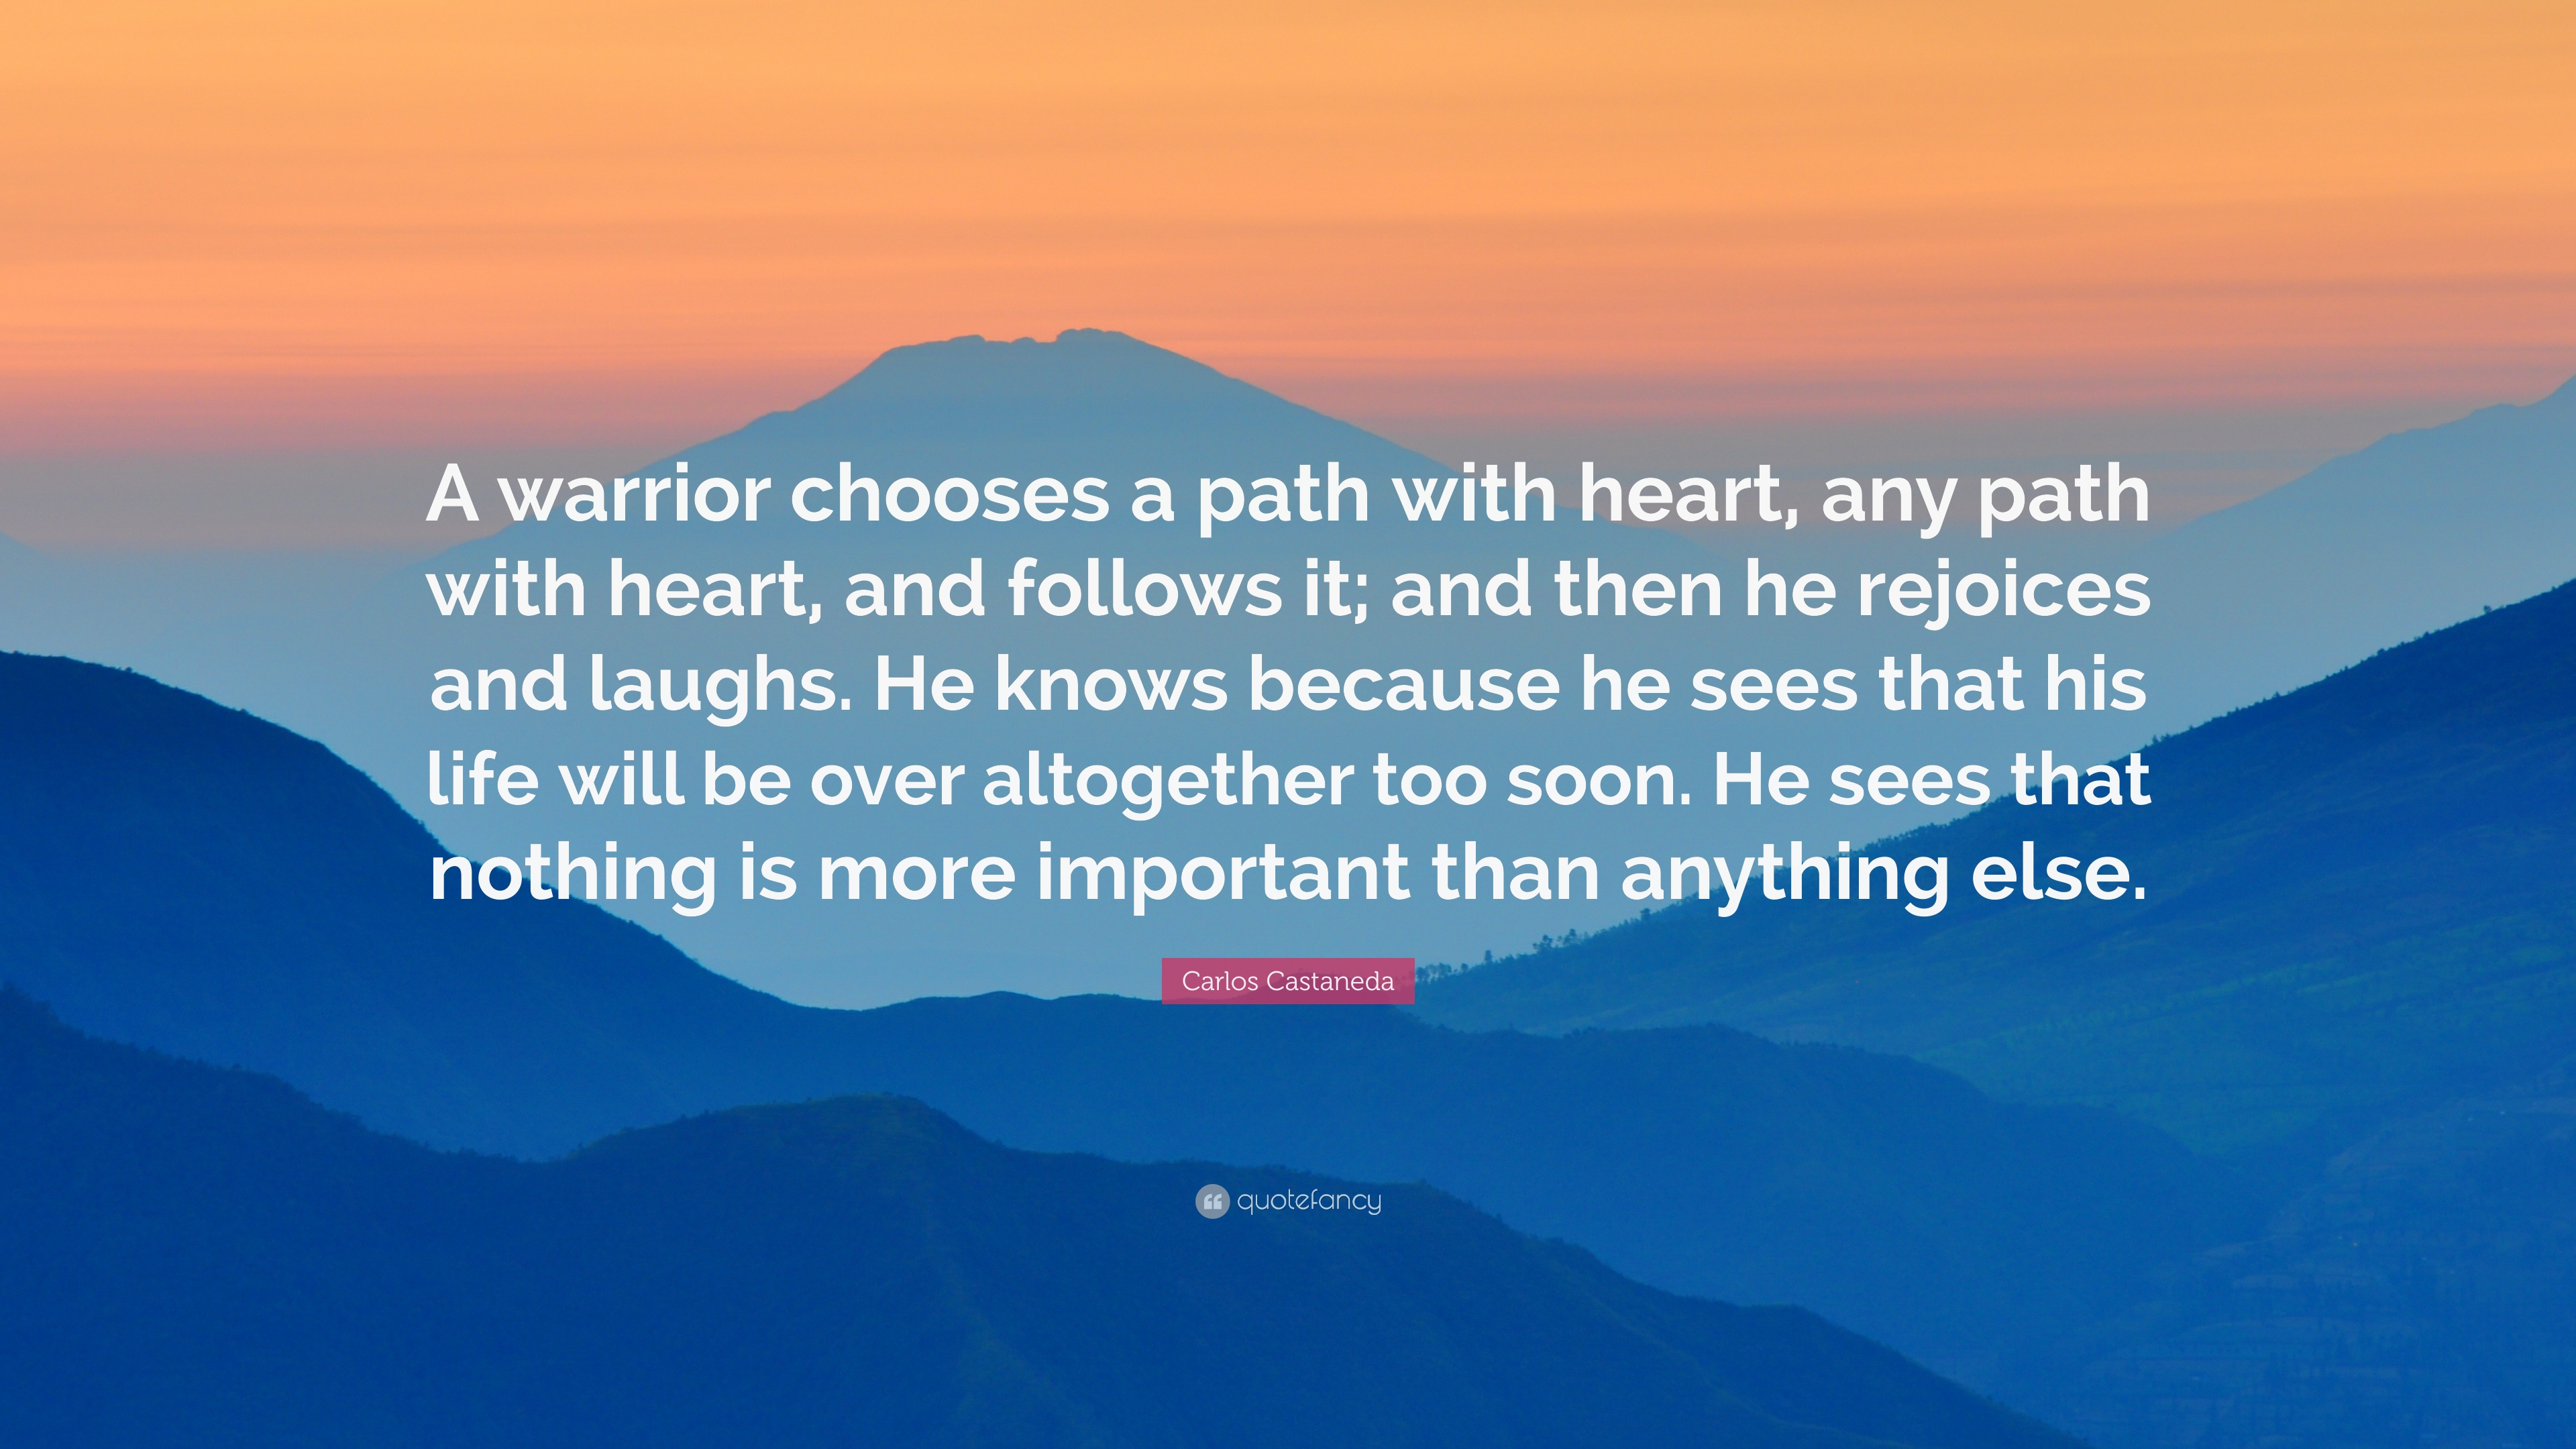 Heart Of A Warrior Quotes: Carlos Castaneda Quotes (100 Wallpapers)